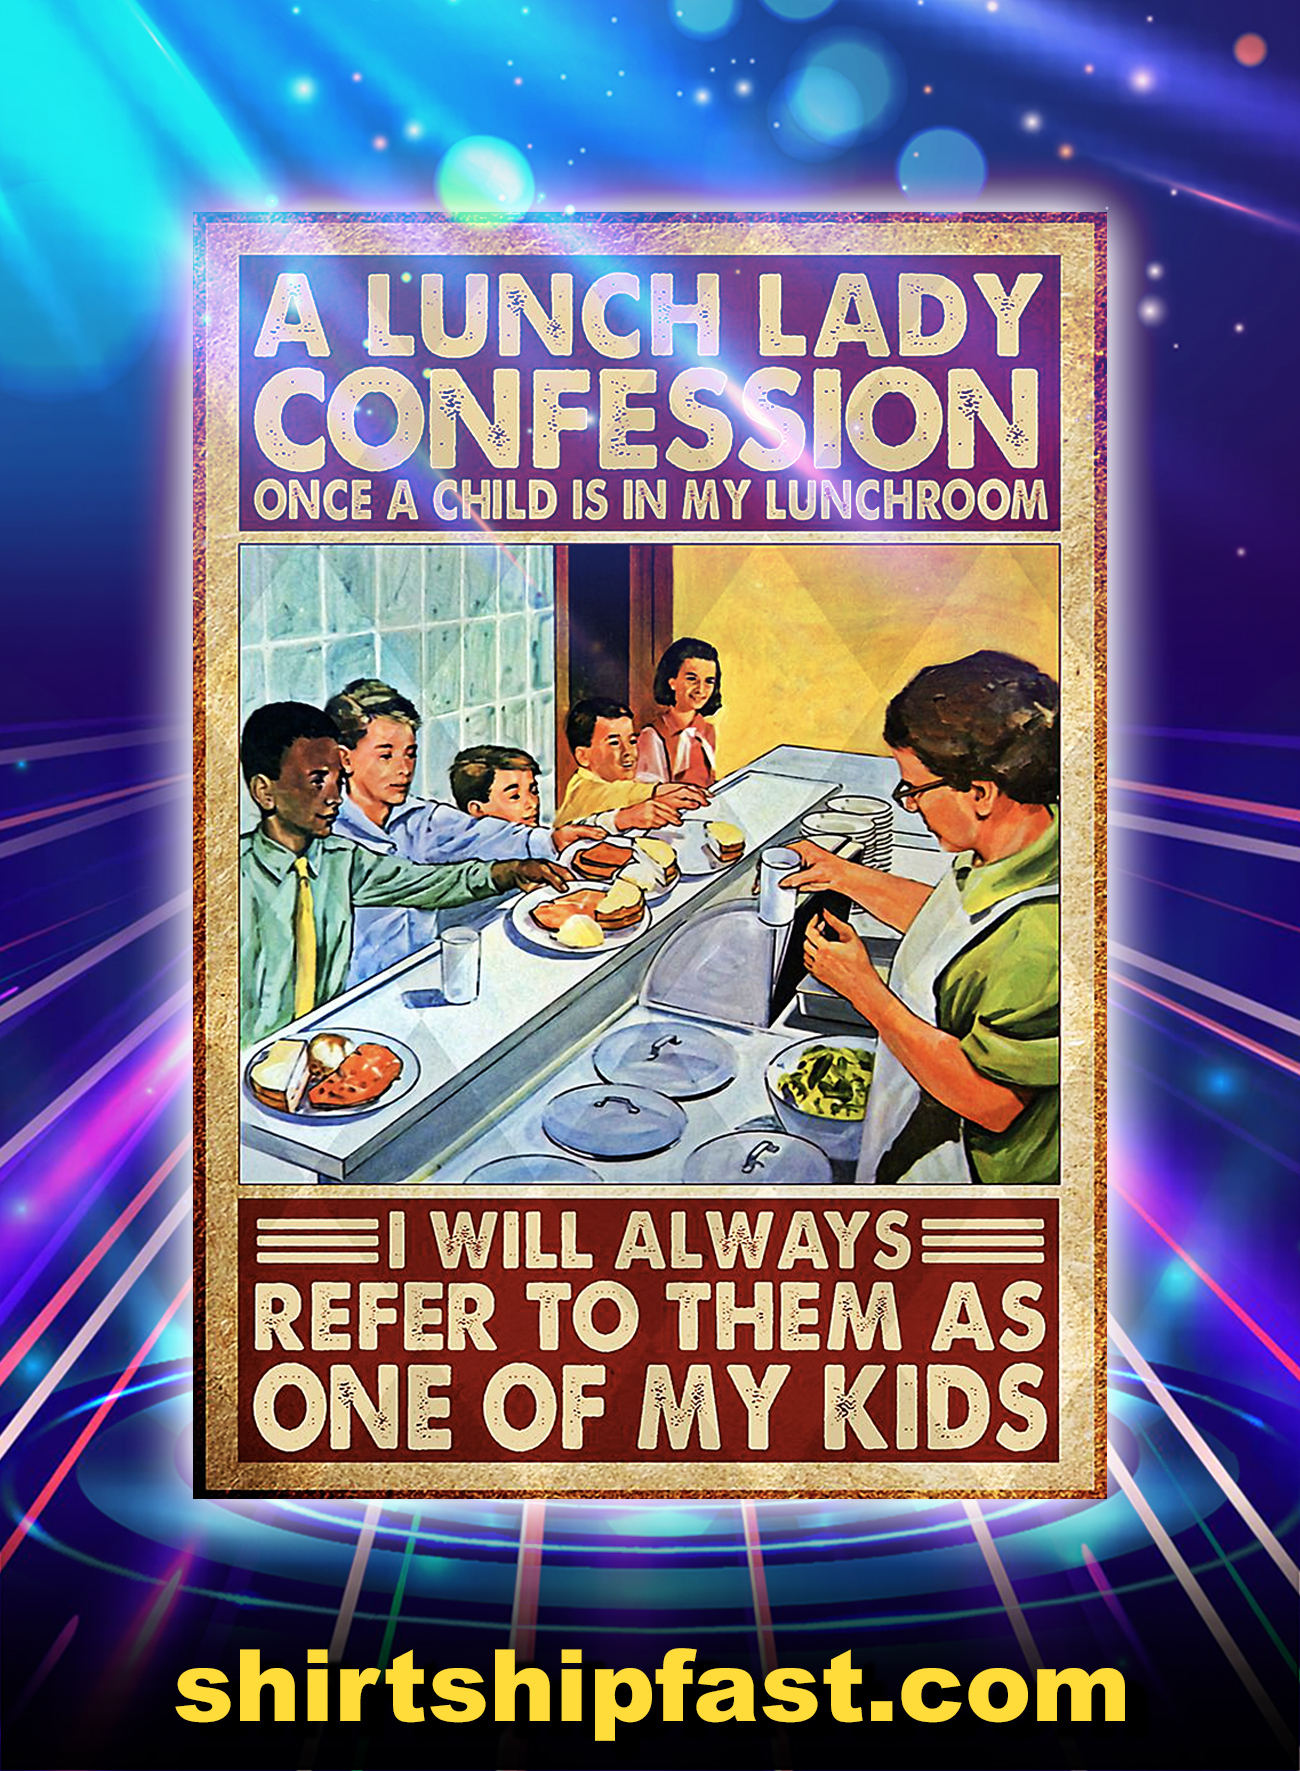 A lunch lady confession i will always refer to them as one of my kid poster